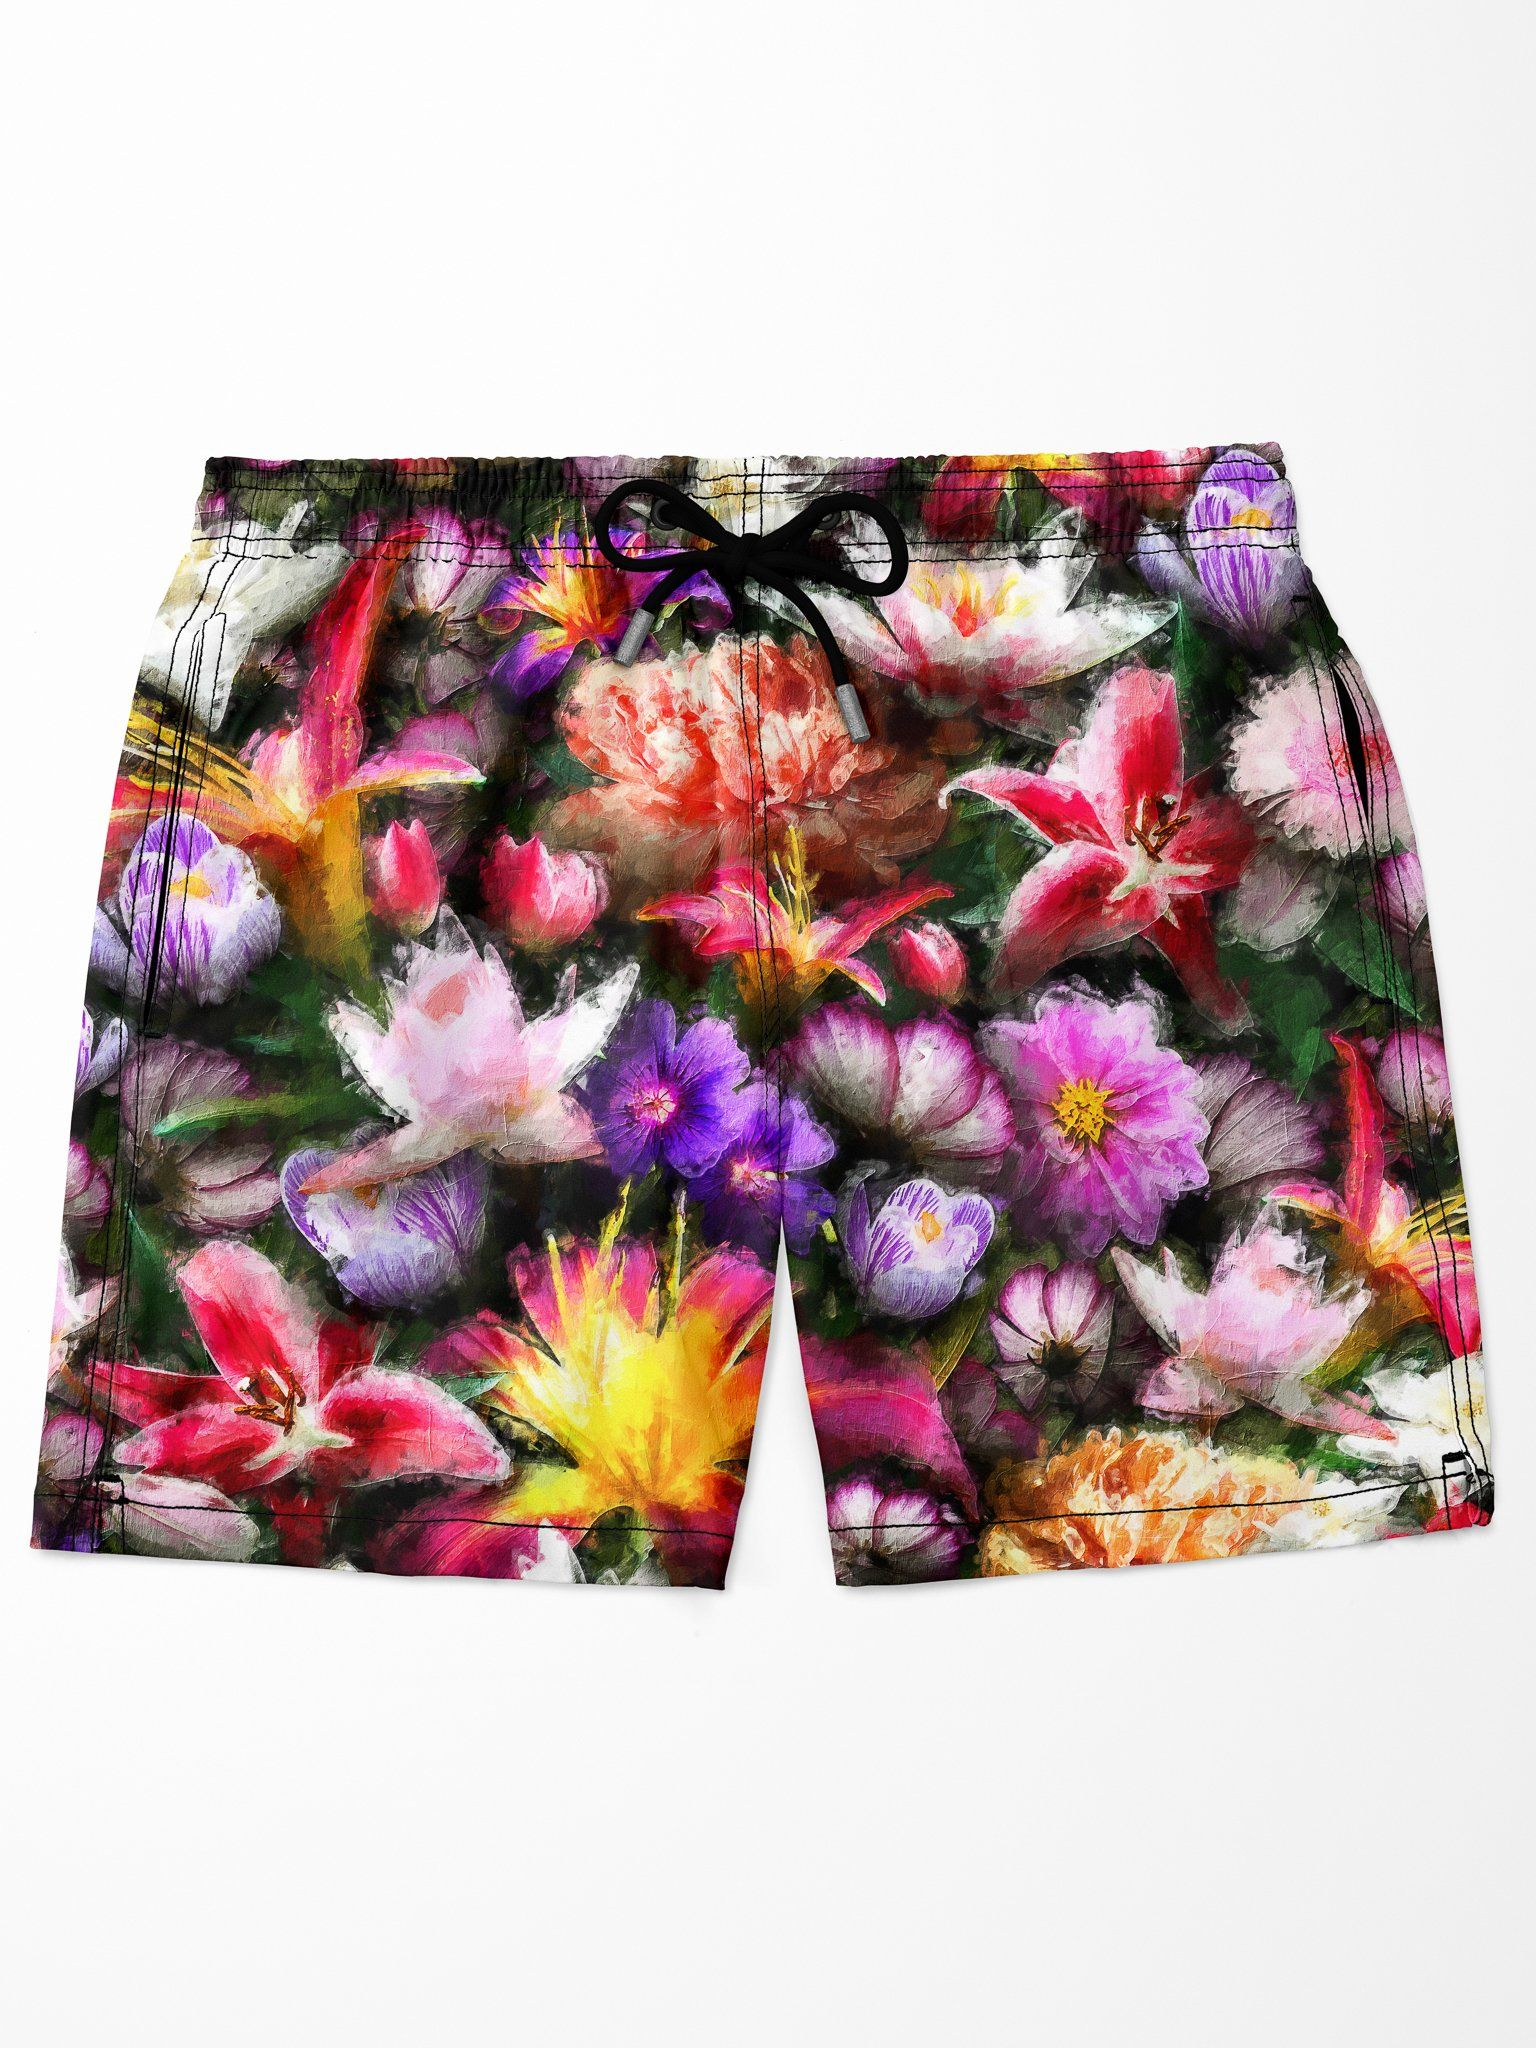 Sacred Bloom Swim Trunks Mens Swim Trunks Electro Threads